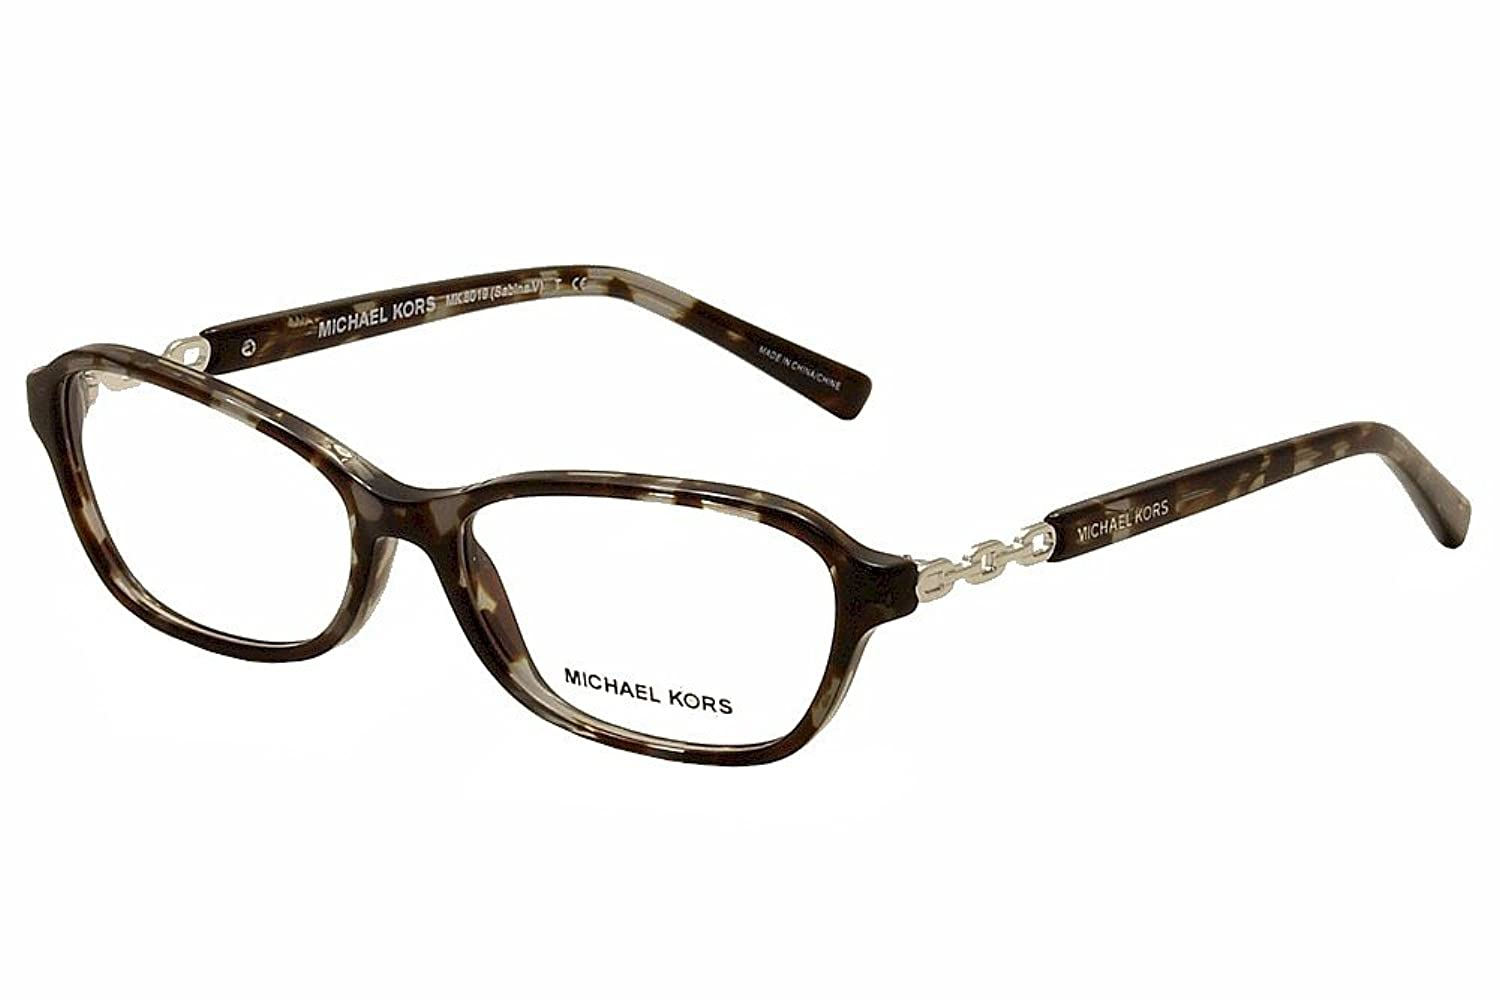 michael kors sabina v mk8019 eyeglass frames 3107 51 black tortoisesilver mk8019 3107 51 at amazon womens clothing store - Mk Glasses Frames